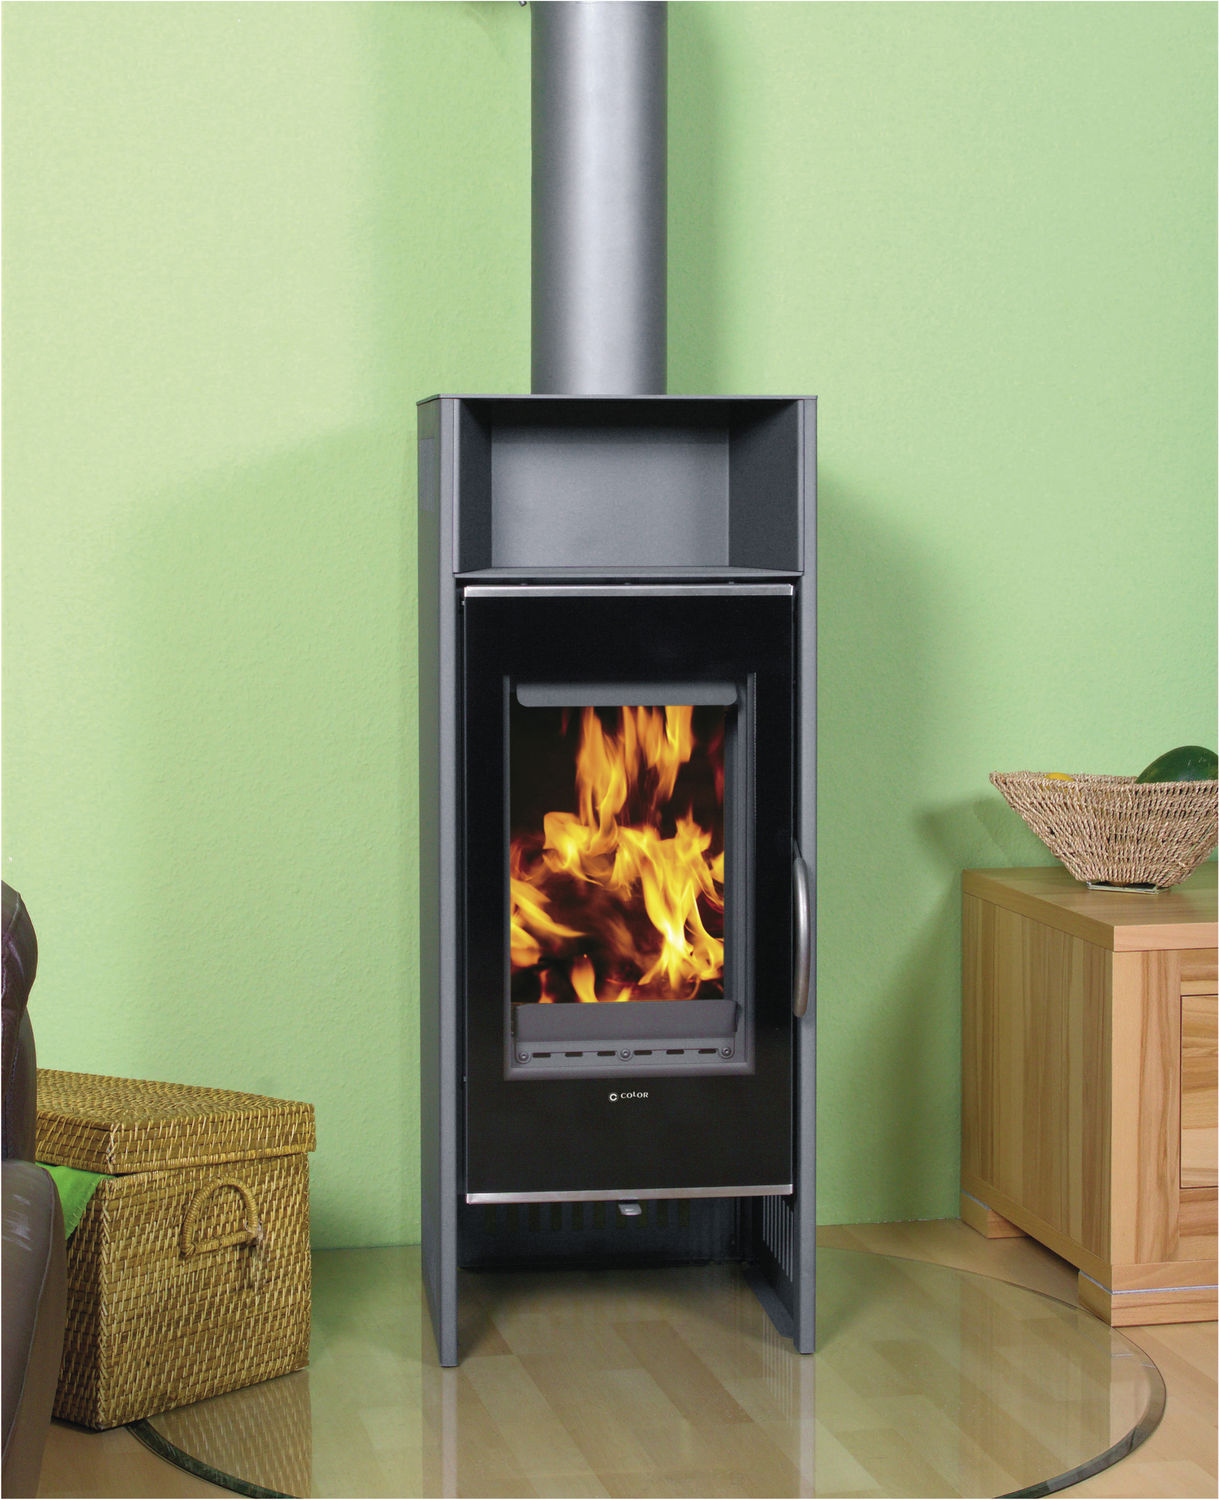 Color Fire Kaminofen Holz Kaminofen Modern Metall C4 Color Emajl Doo